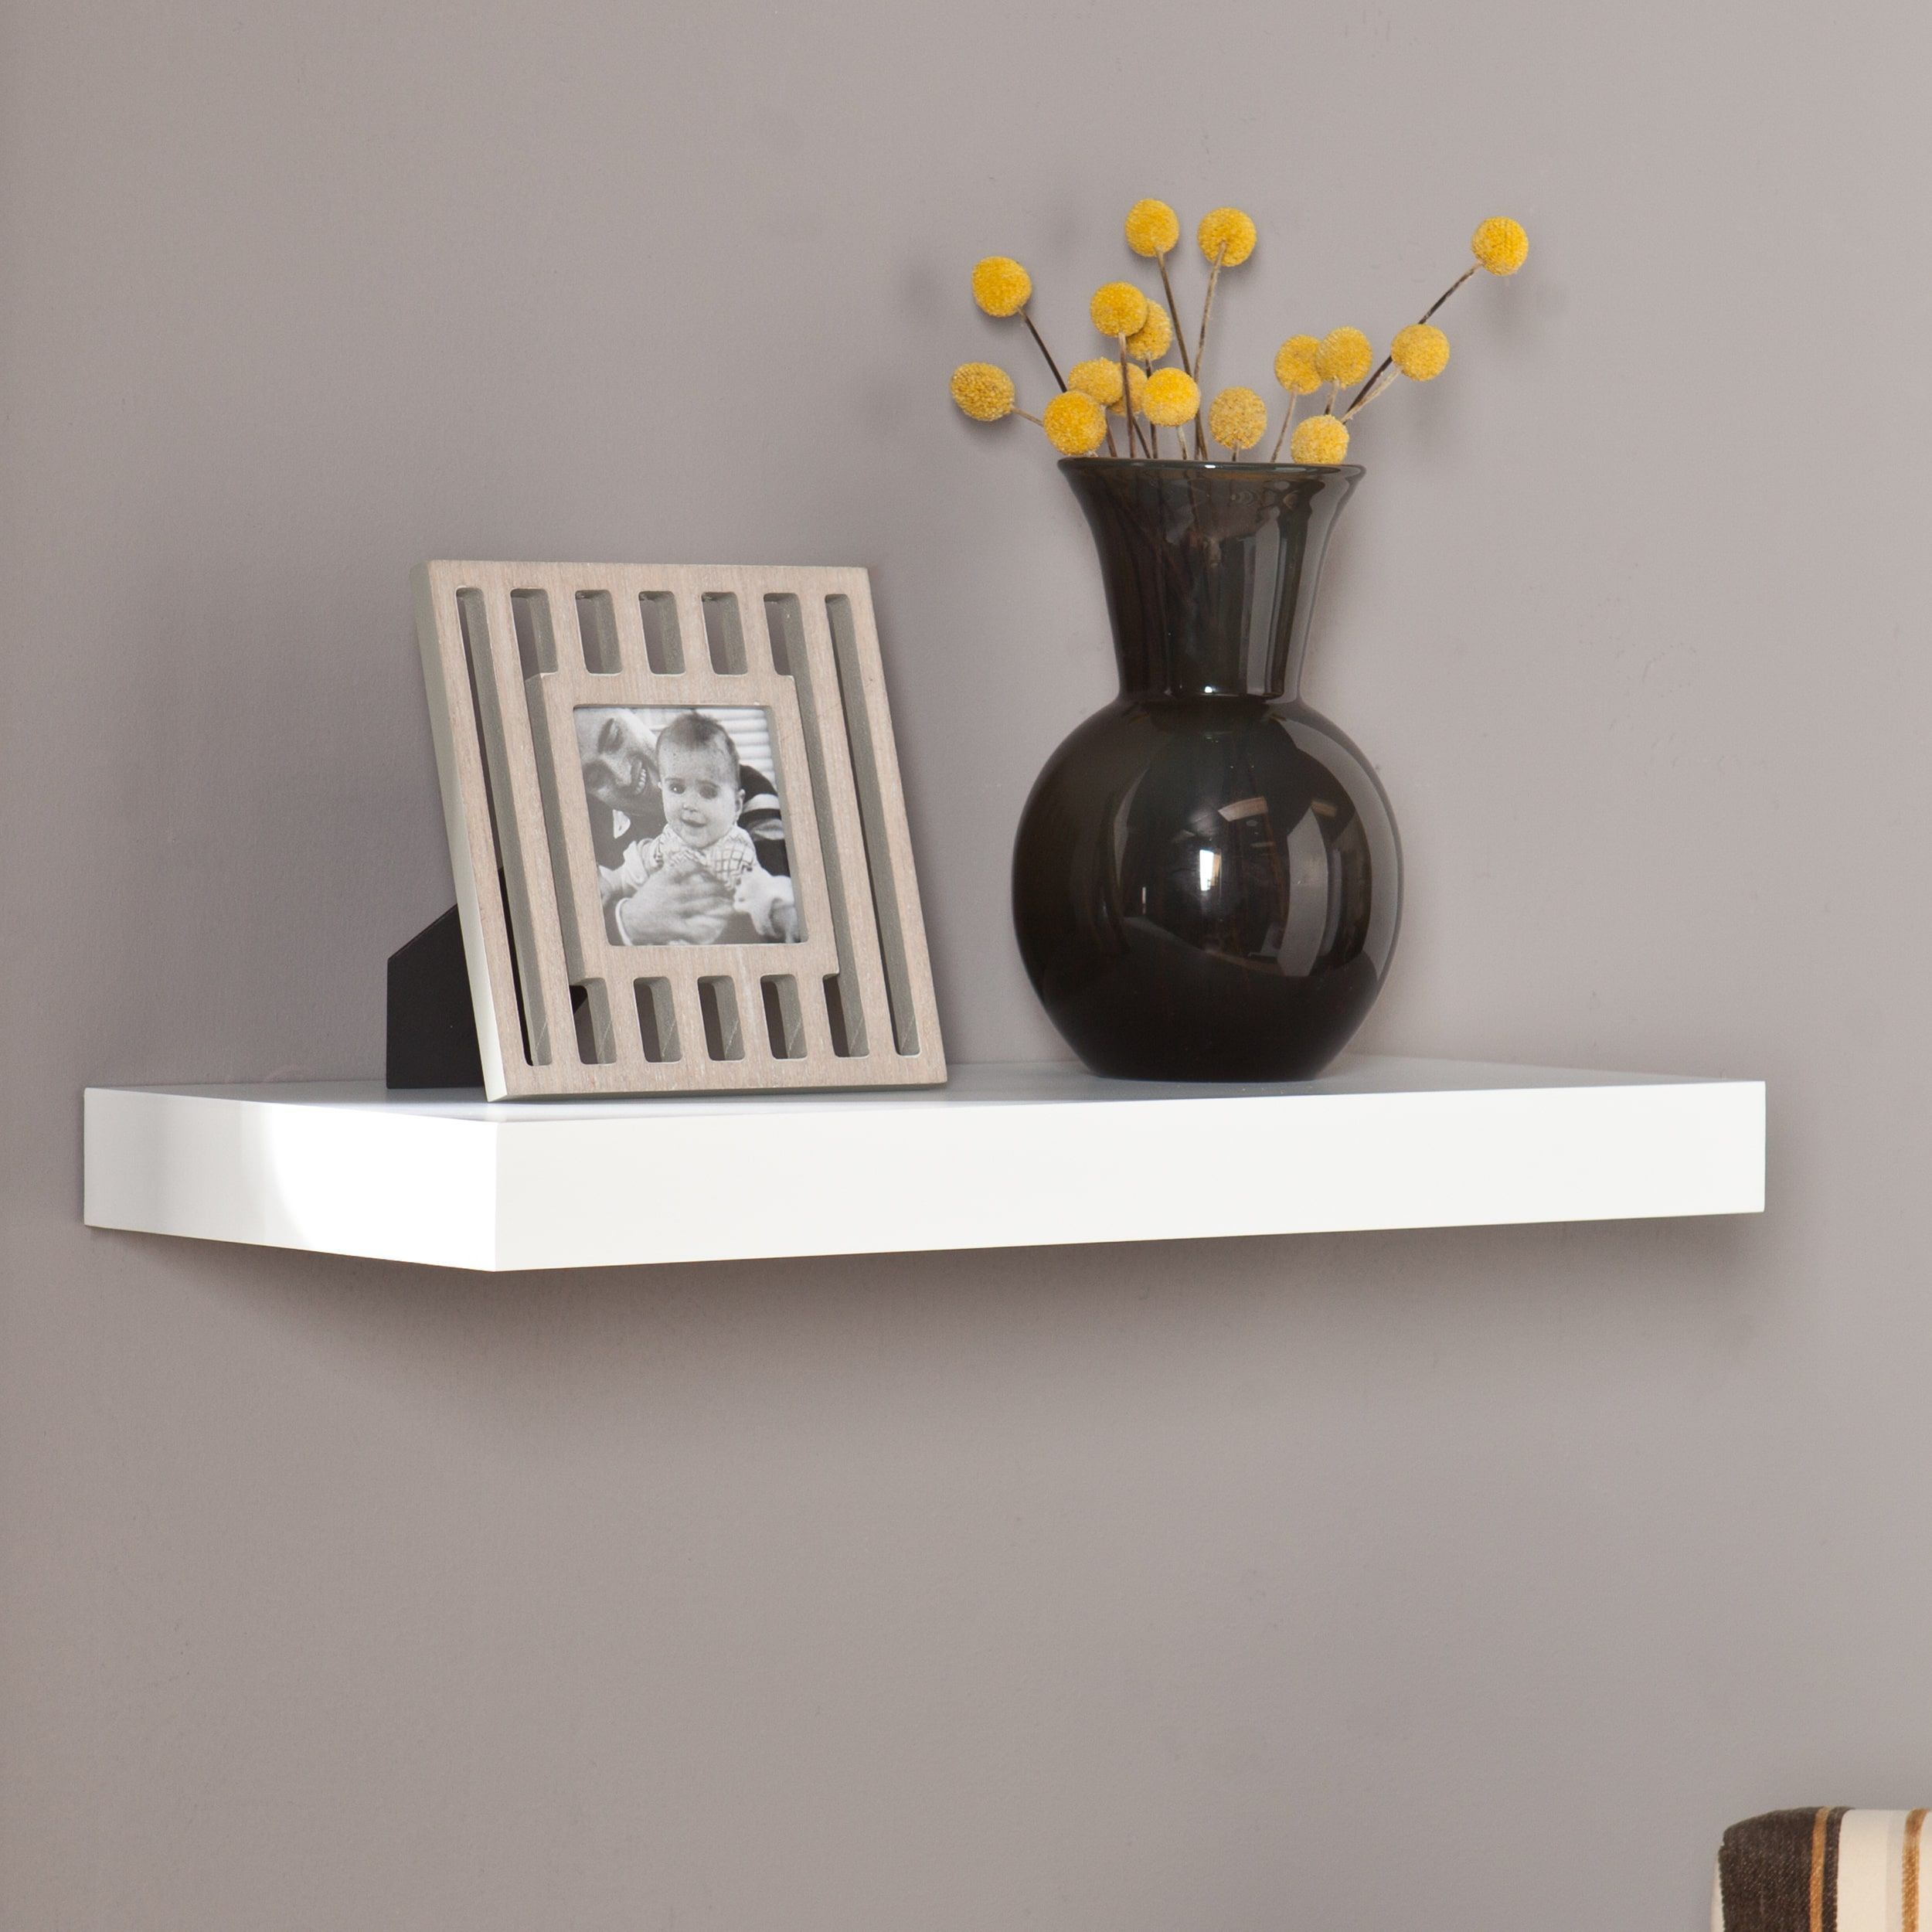 Online Shopping Bedding Furniture Electronics Jewelry Clothing More White Floating Shelves Rustic Floating Shelves Floating Shelves